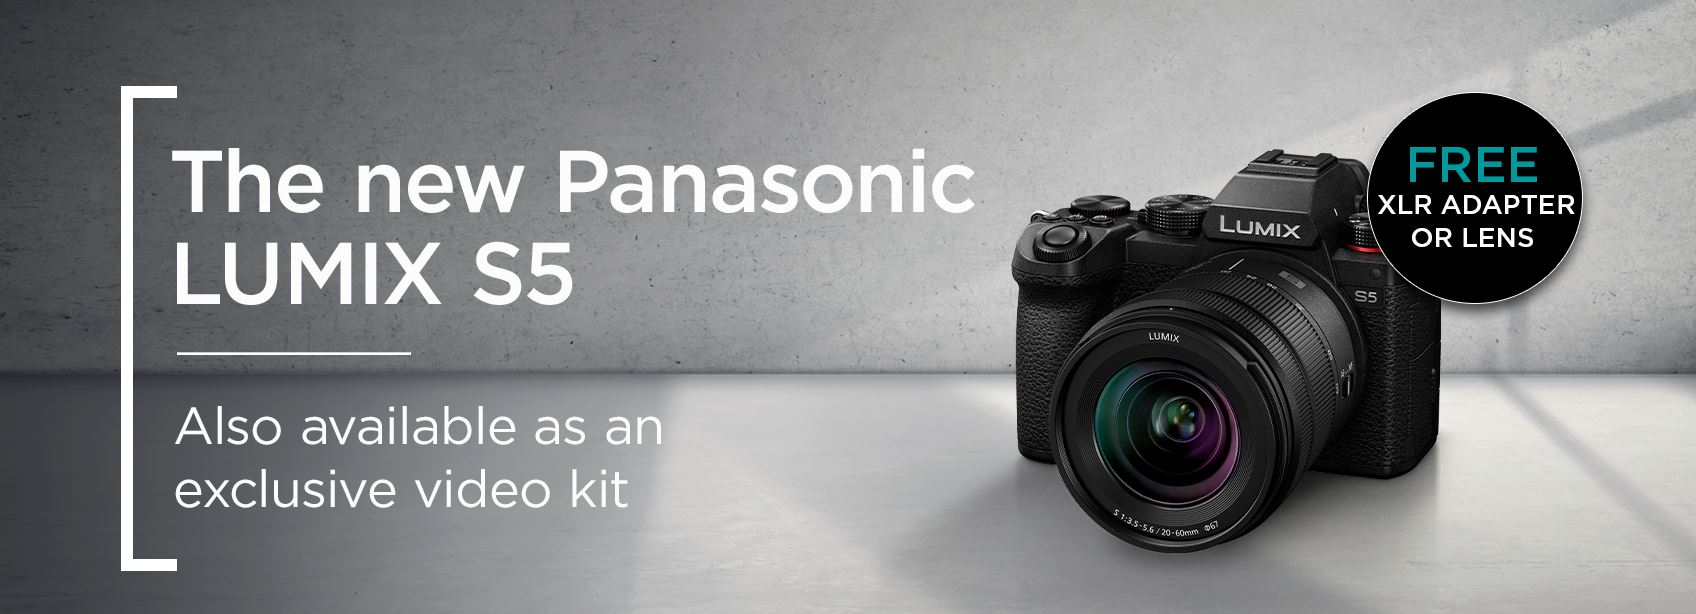 The new Panasonic Lumix S5 - Also available as an exclusive video kit